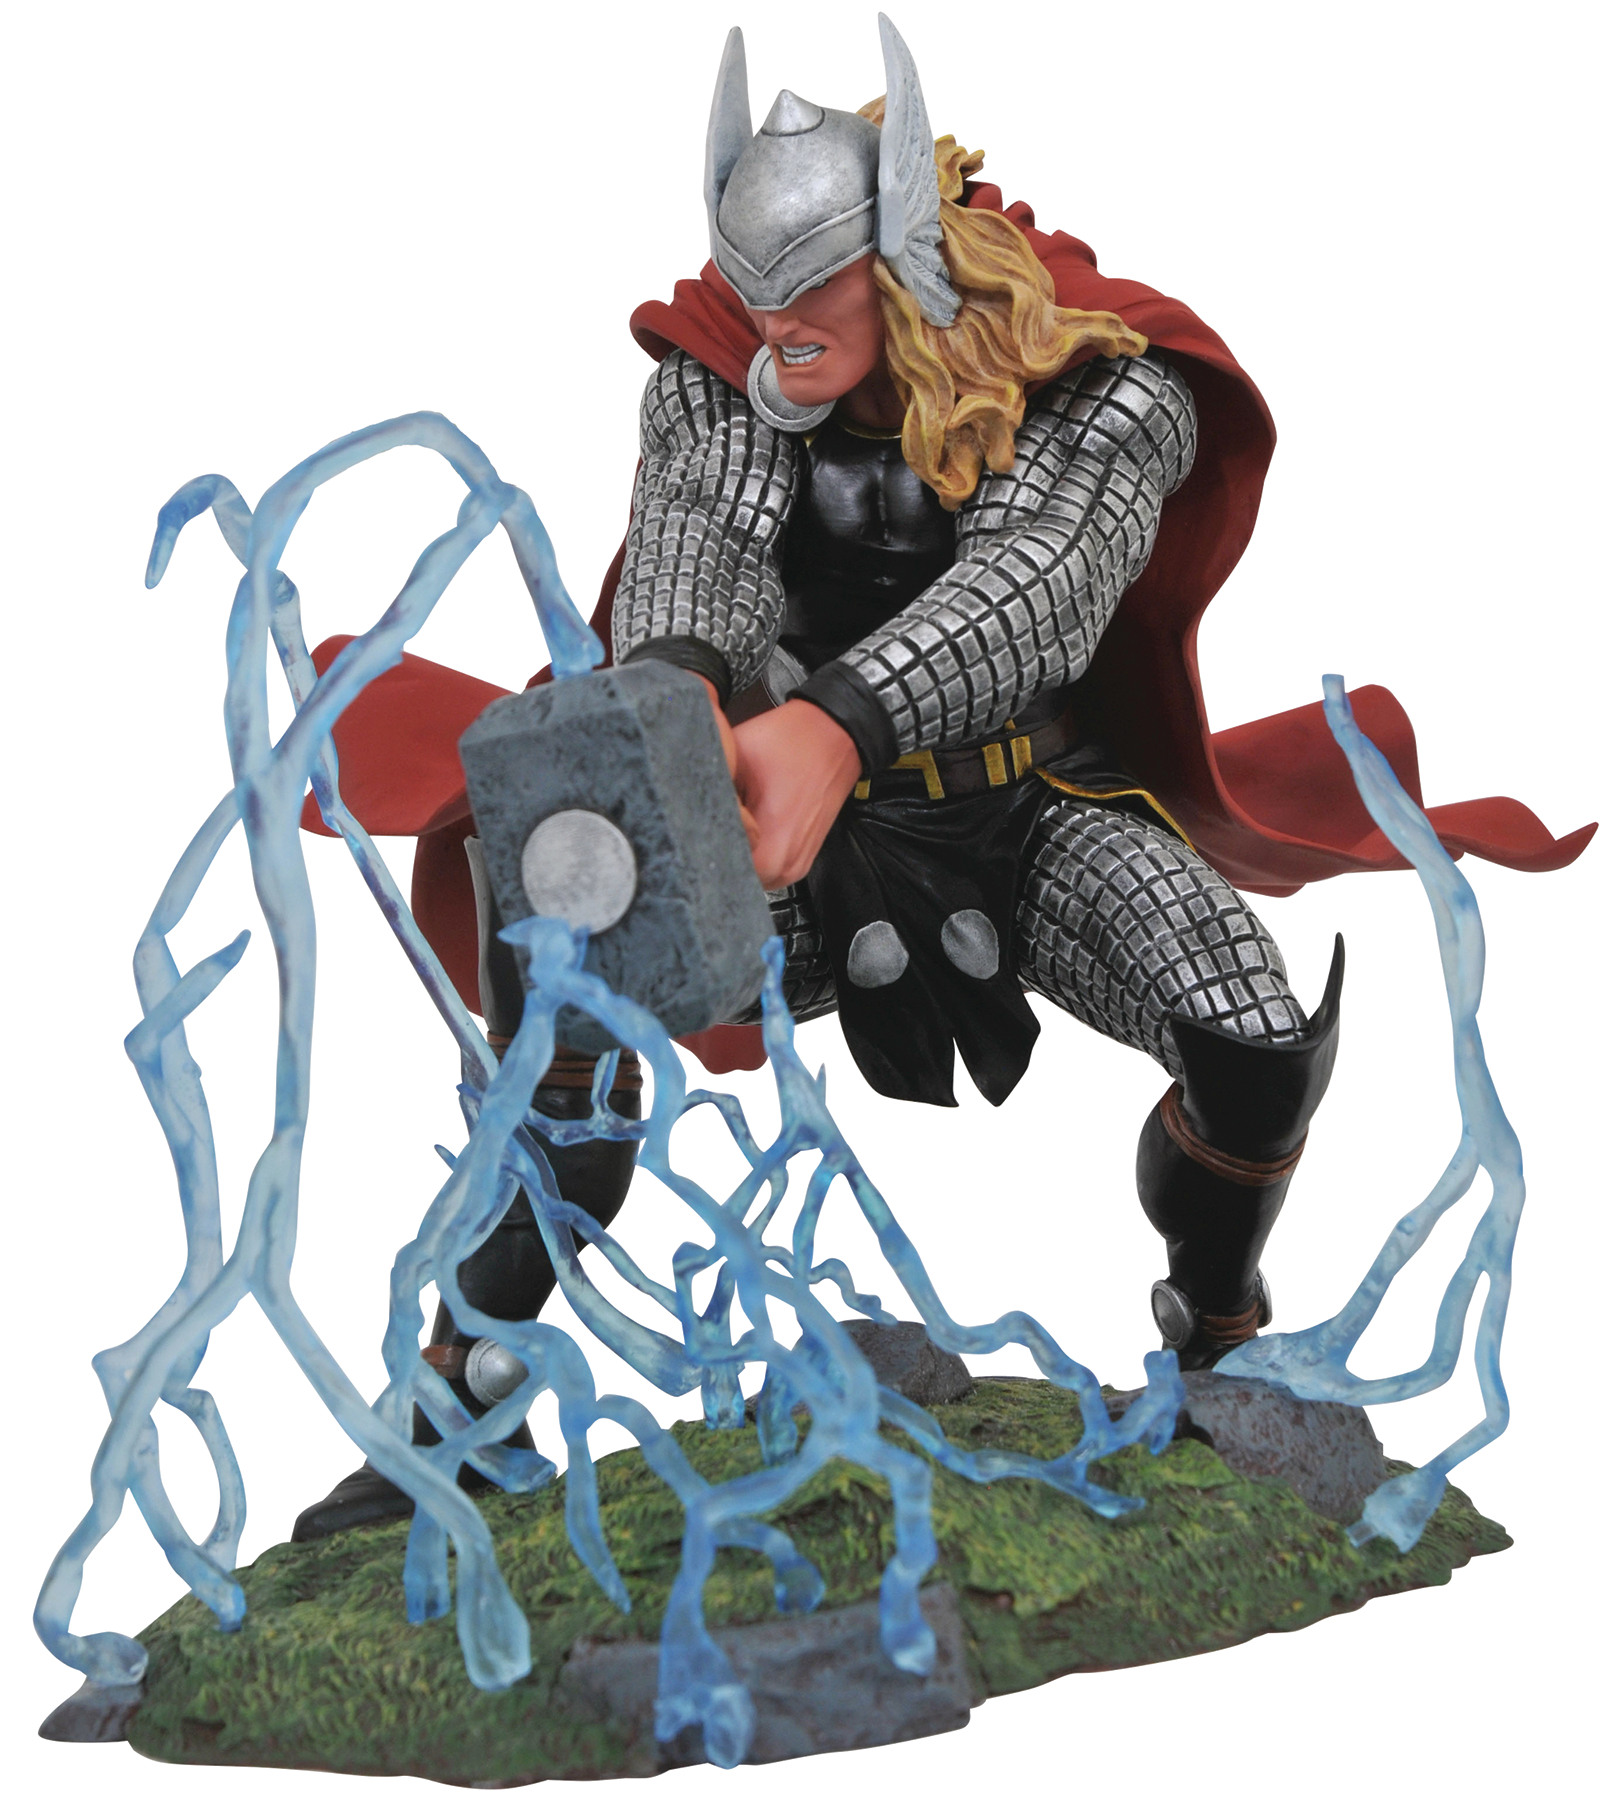 MARVEL GALLERY THOR COMIC PVC FIGURE (O/A)